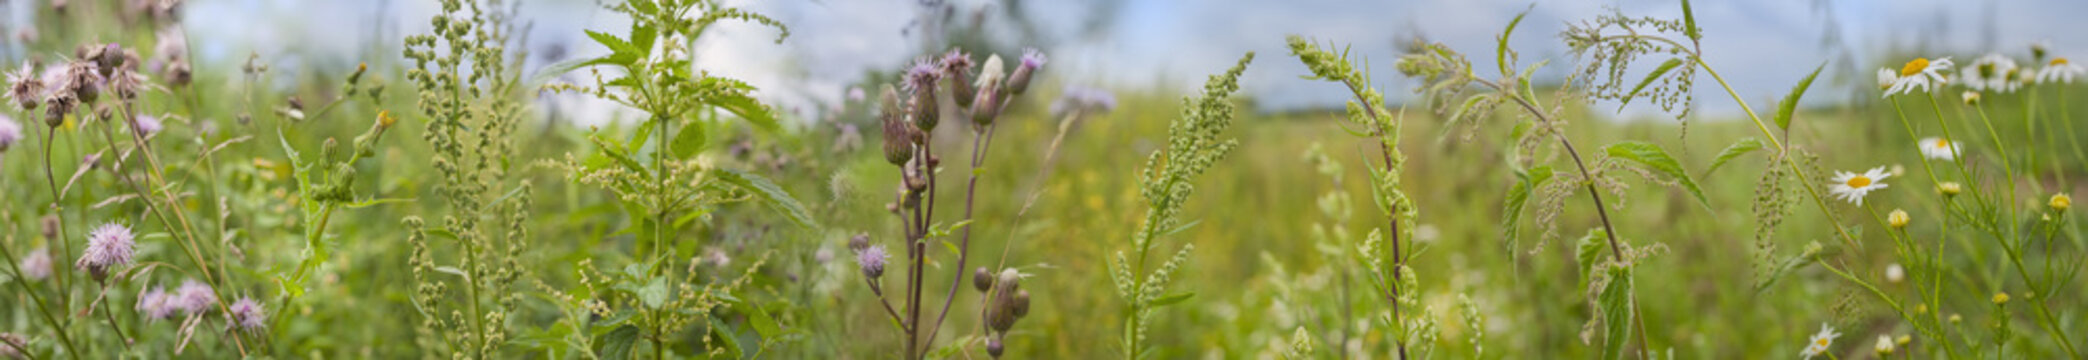 weeds - nettle, thistle, wormwood on a field close up